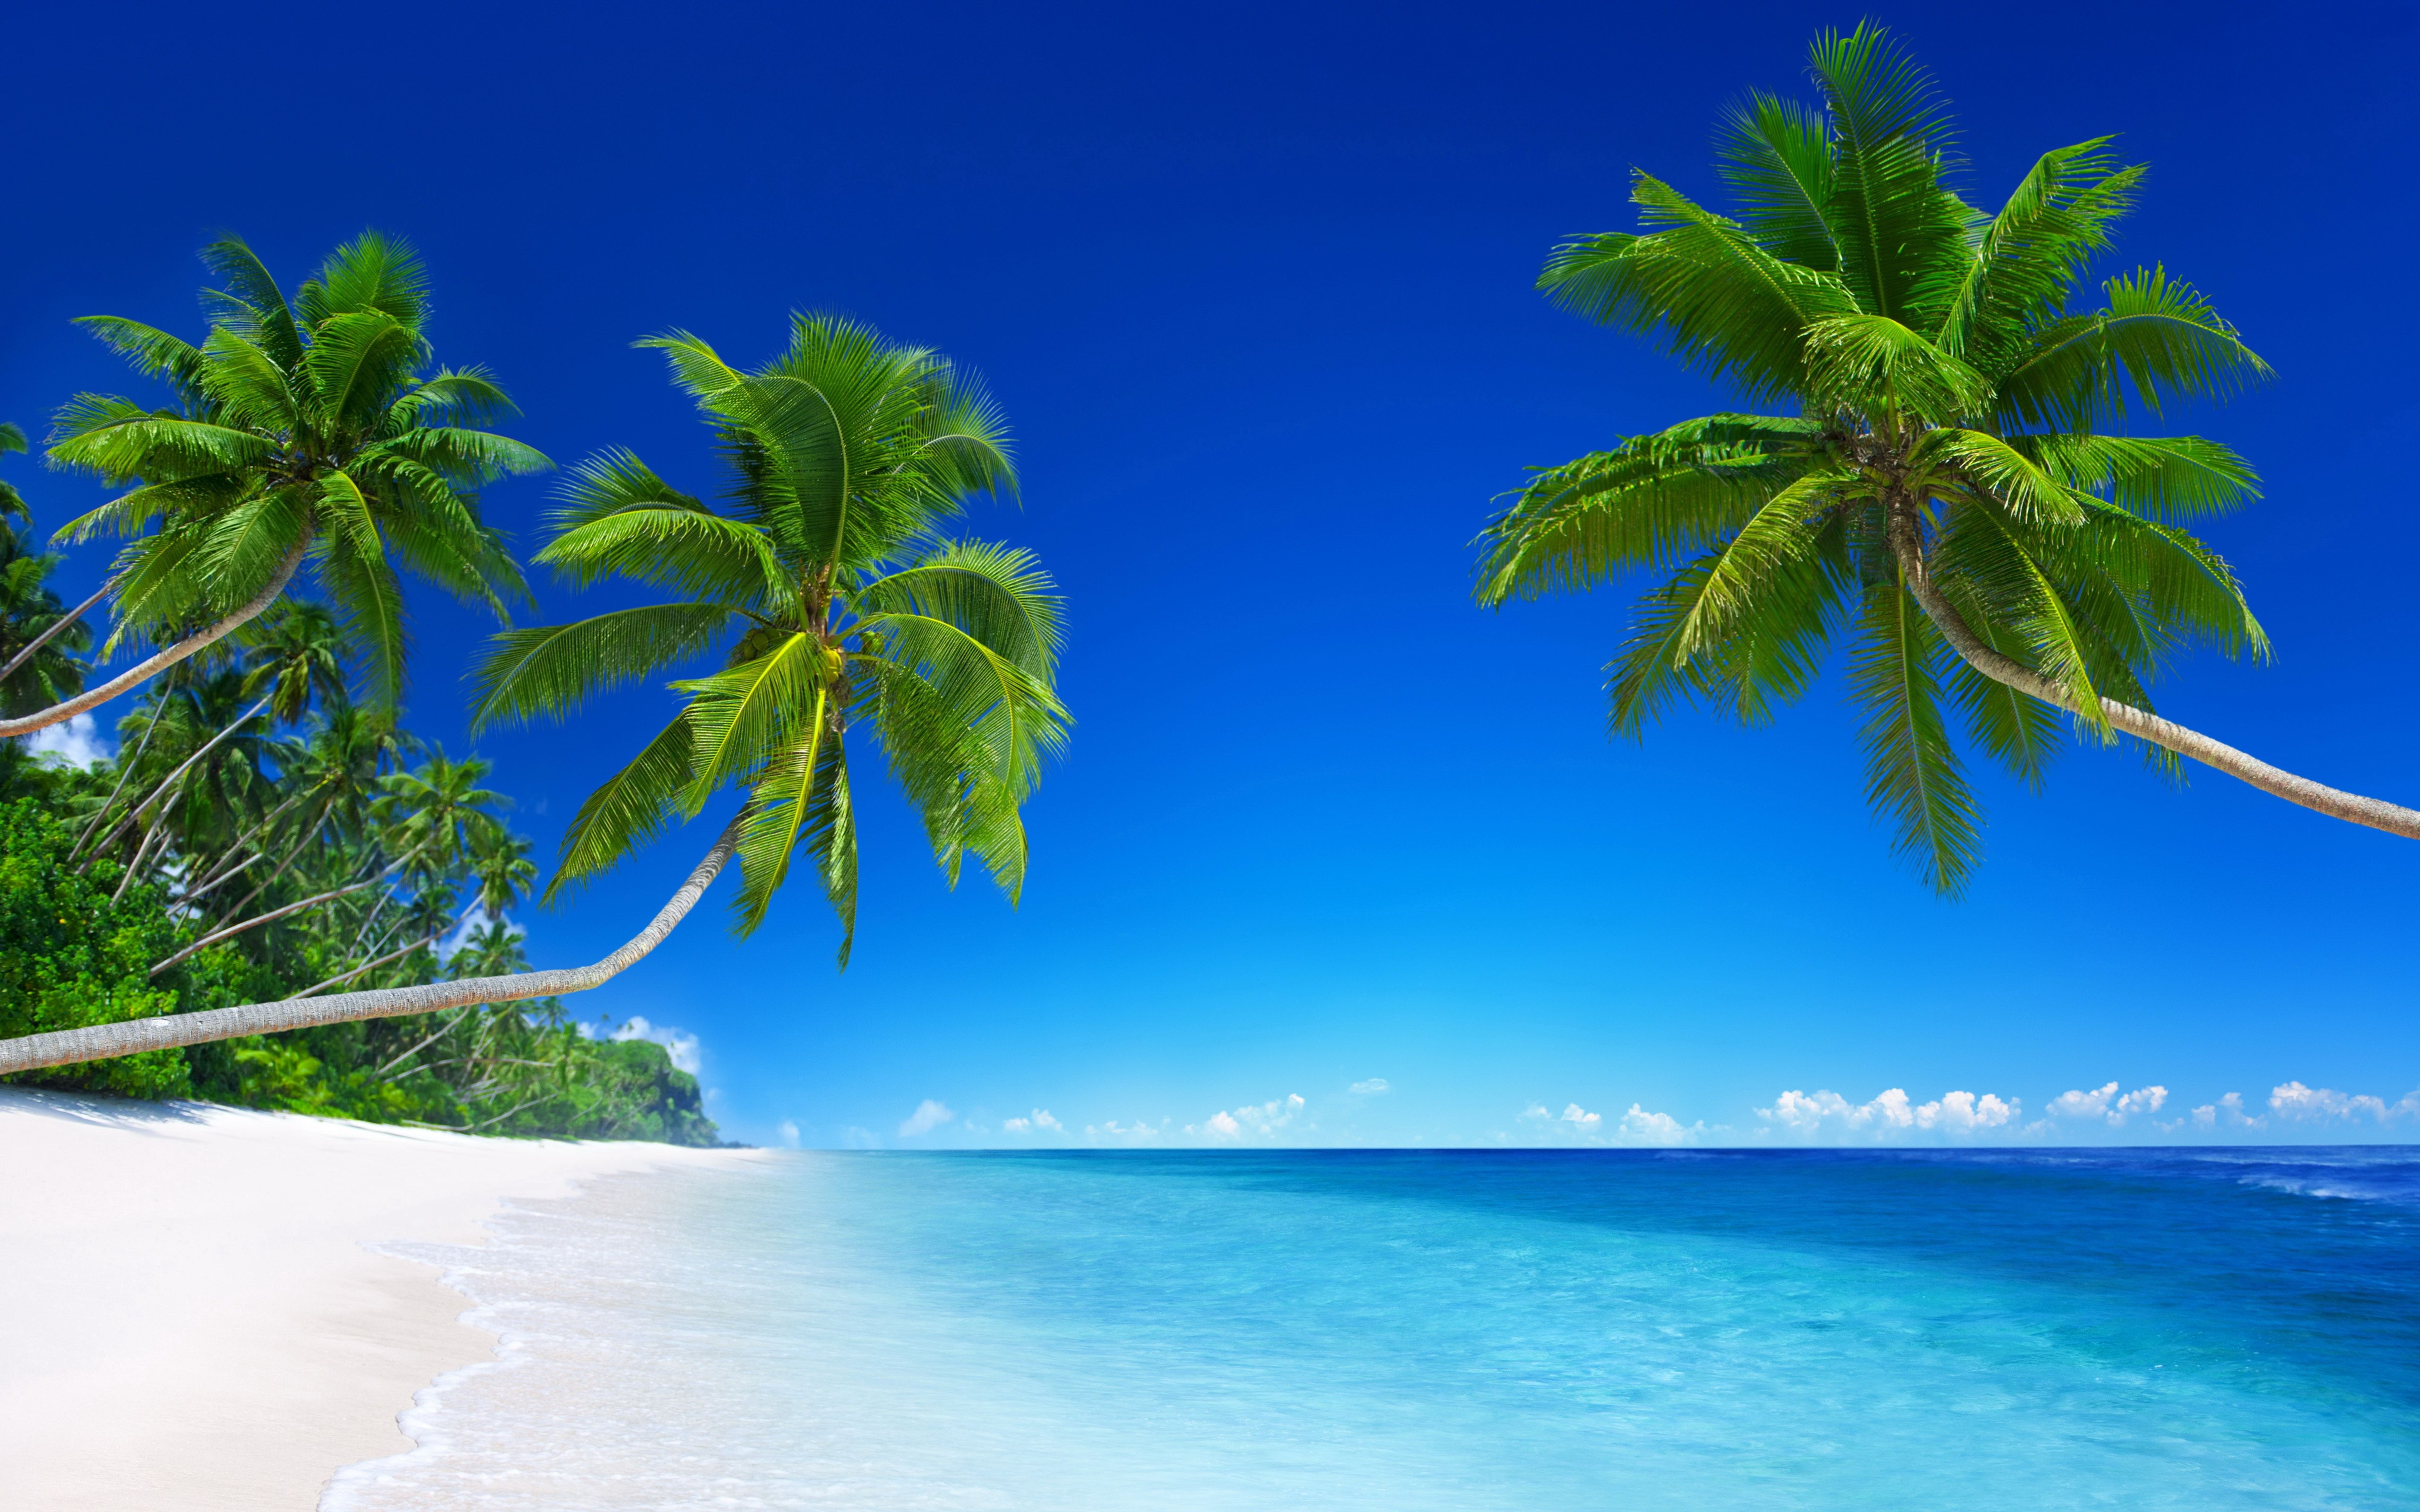 HD Beach Desktop Wallpapers   Top HD Beach Desktop 5120x3200